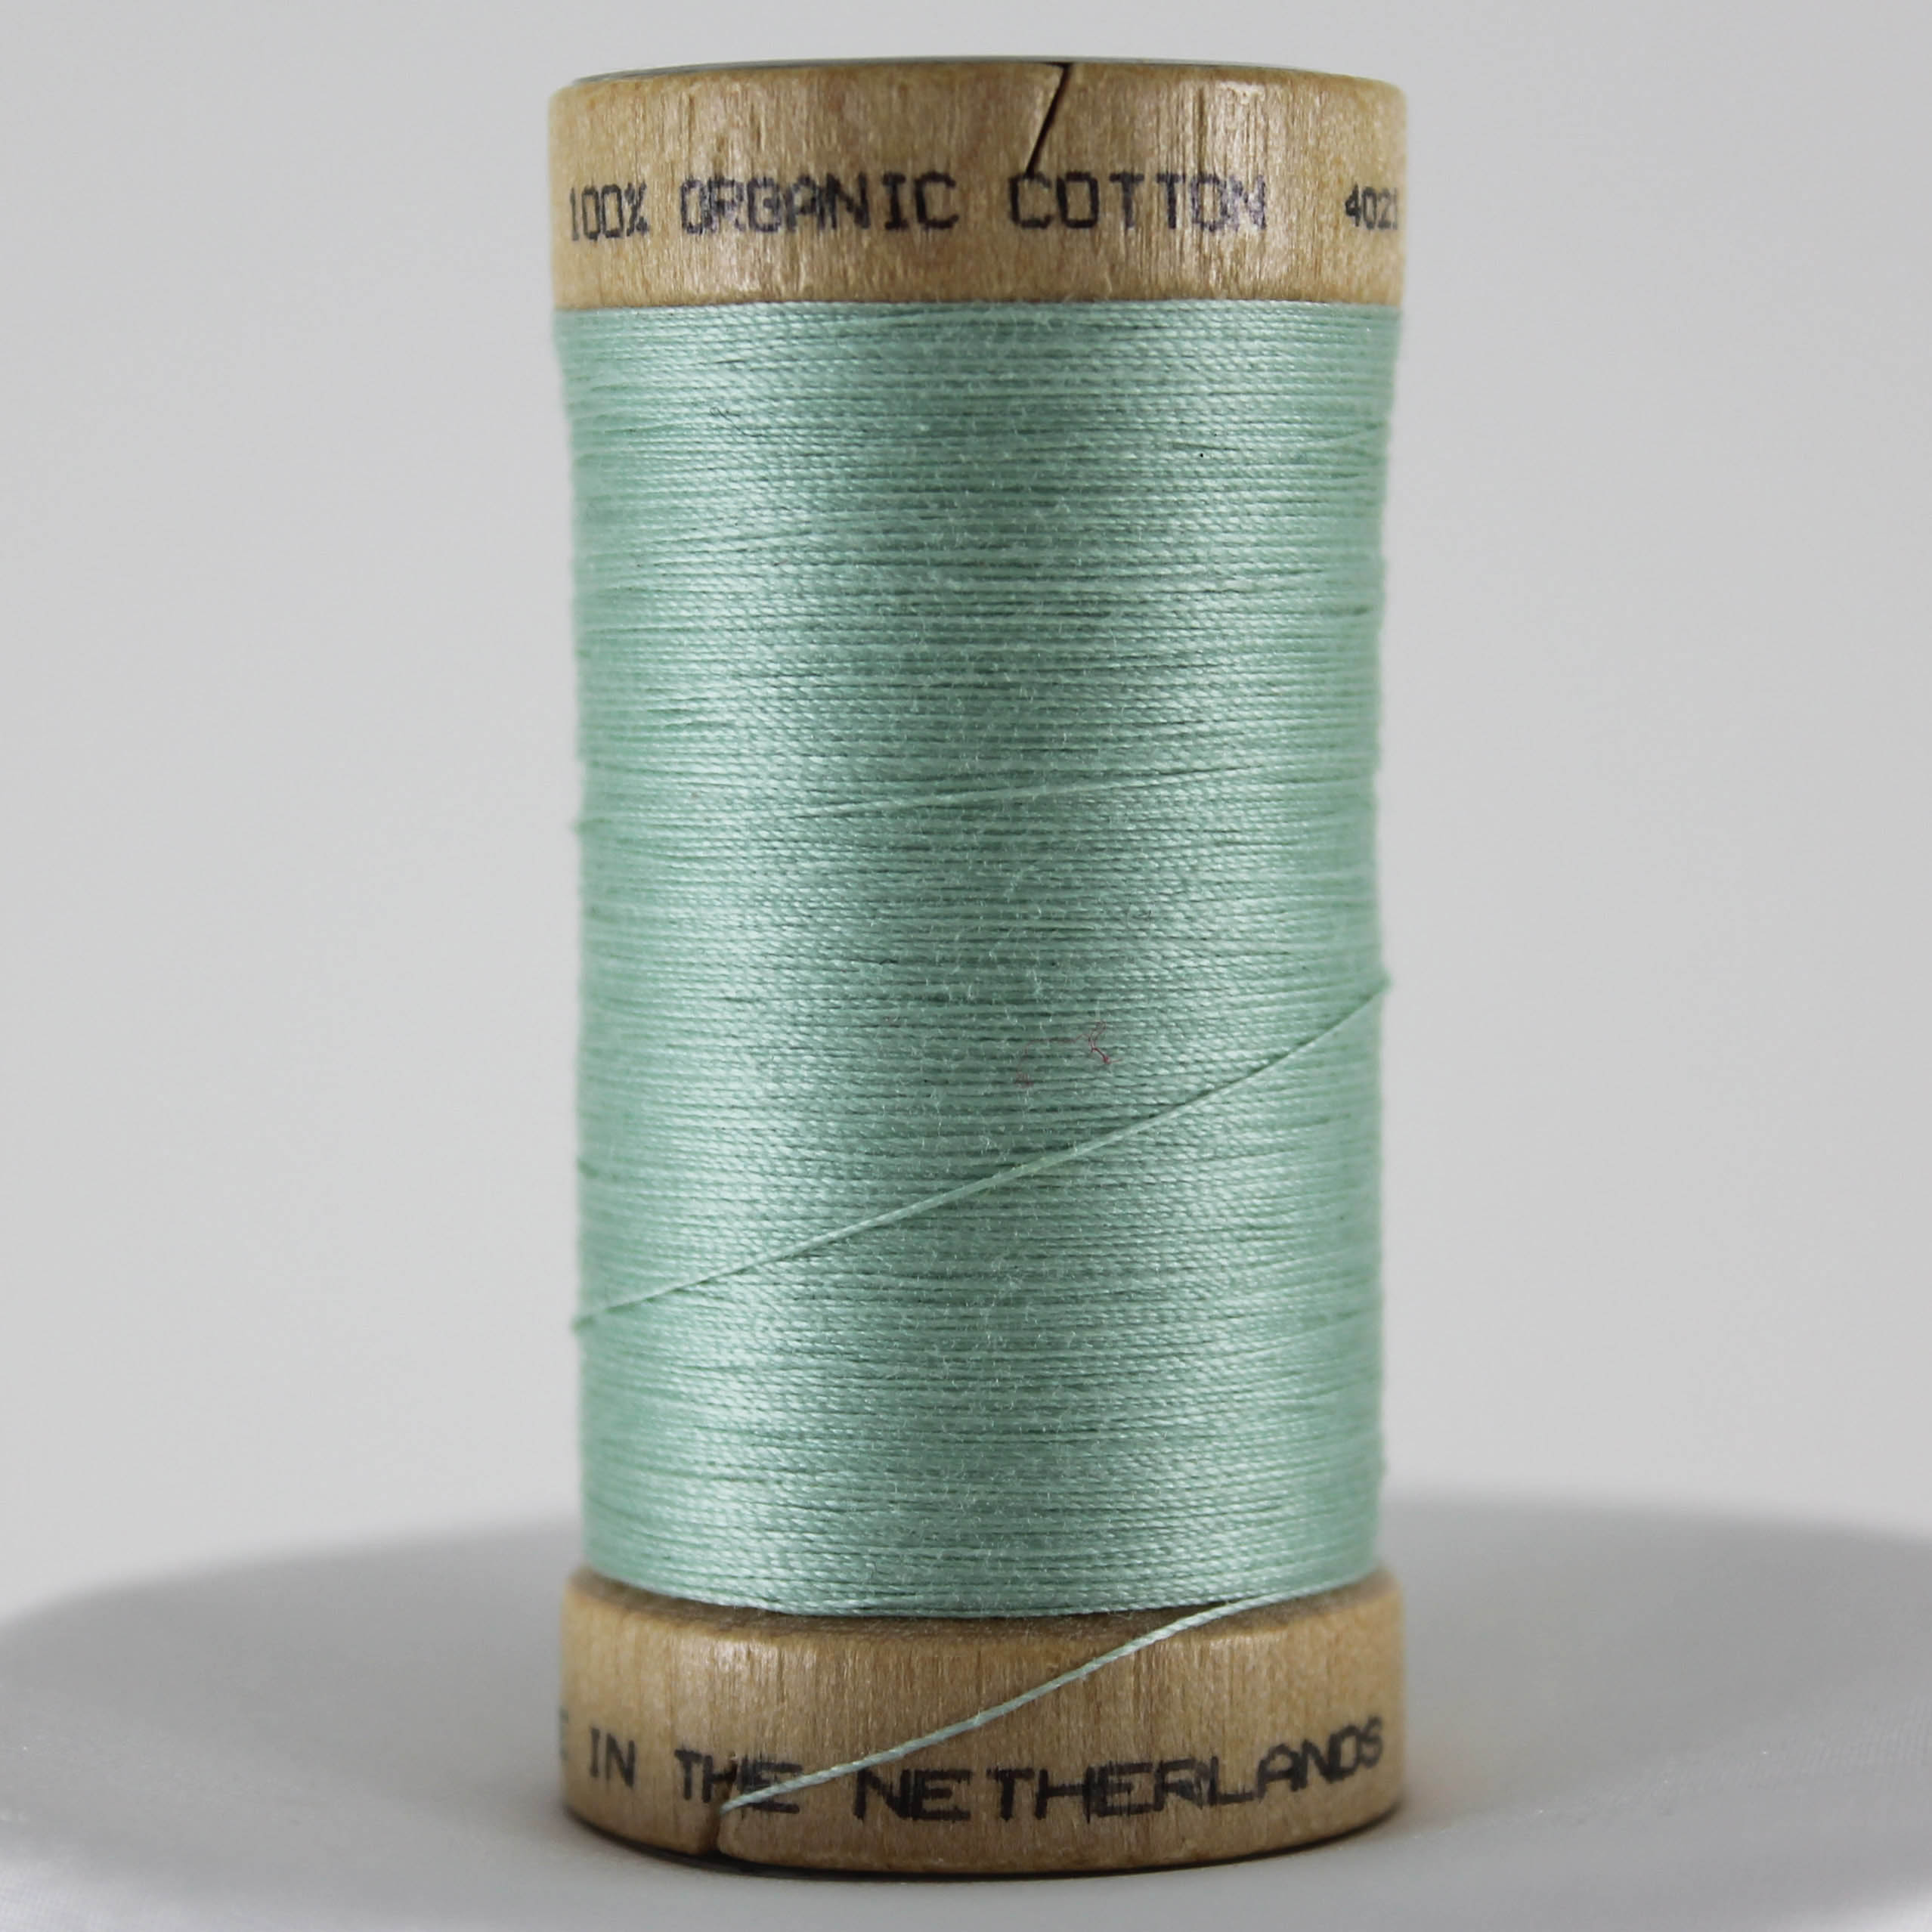 Mint Green Organic Cotton Thread